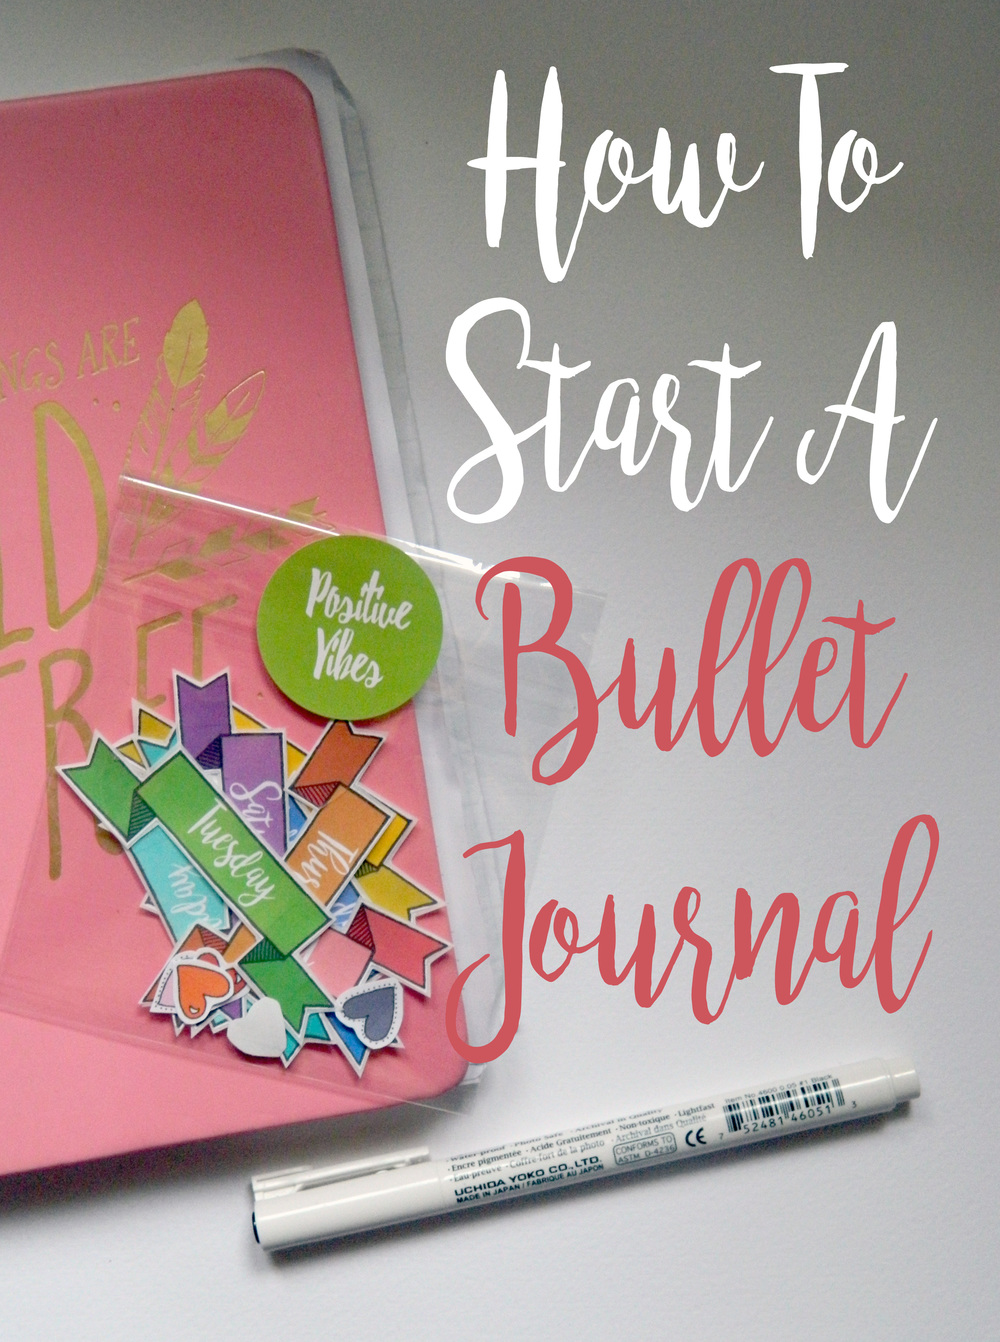 Twenty Something Meltdown on Bullet Journaling.